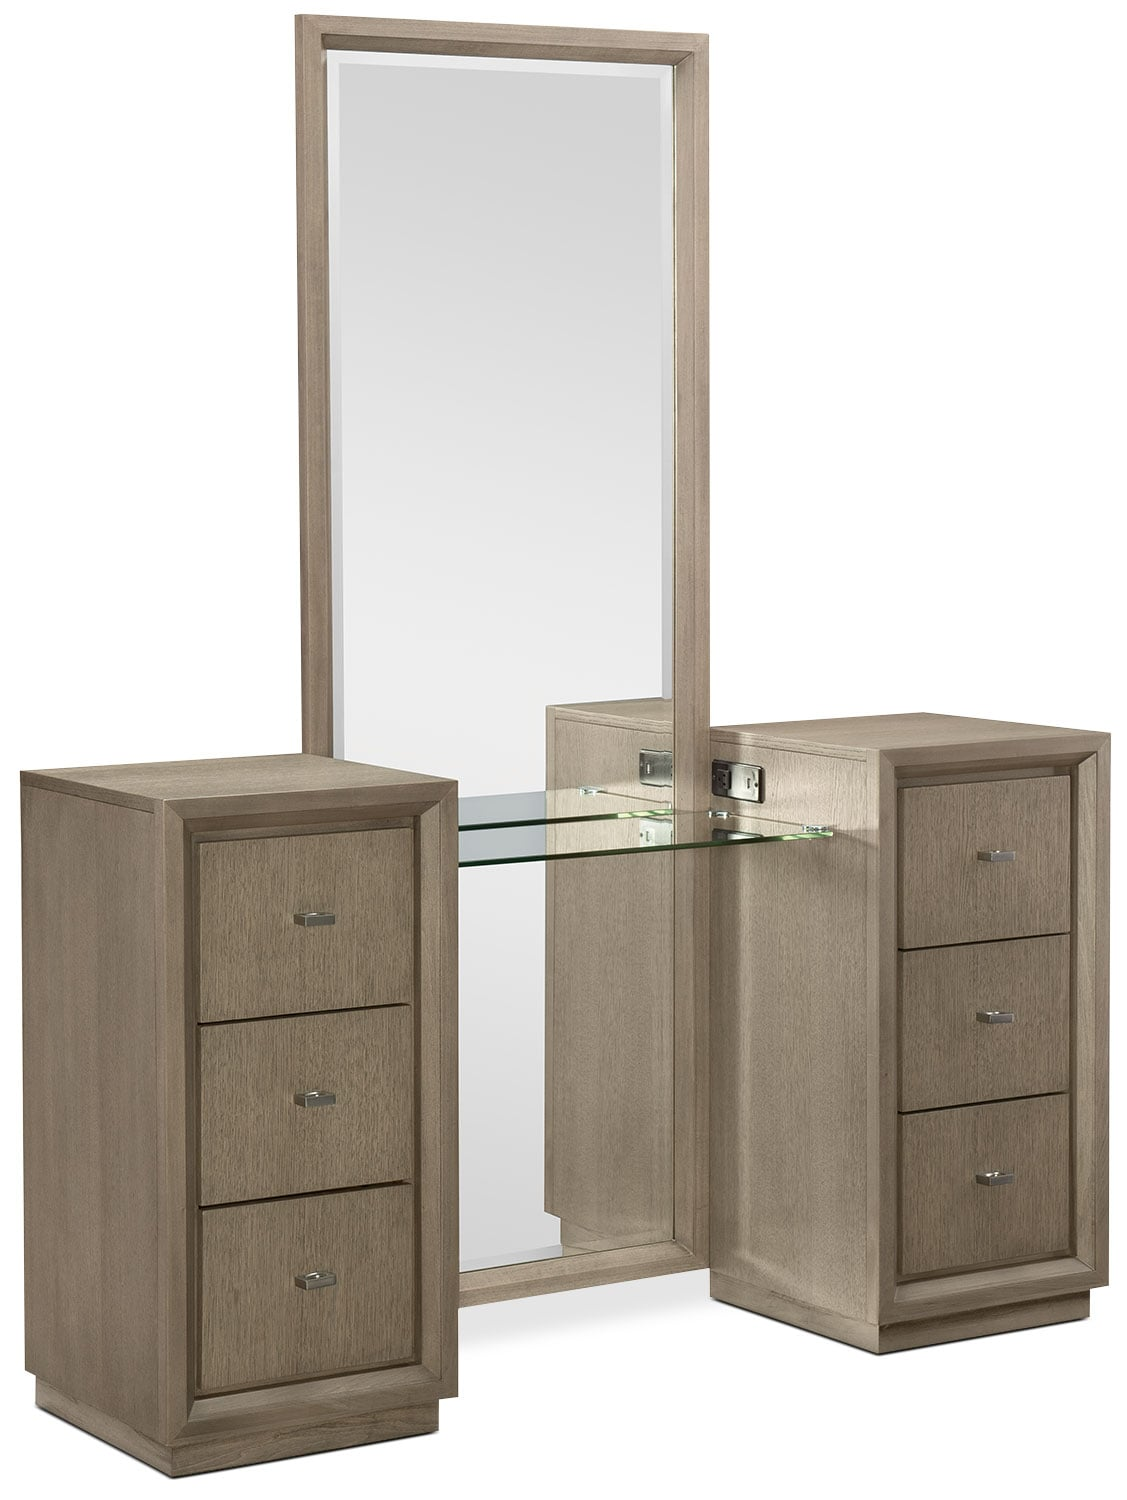 Rachael Ray Highline 2-Piece Vanity Set - Greige